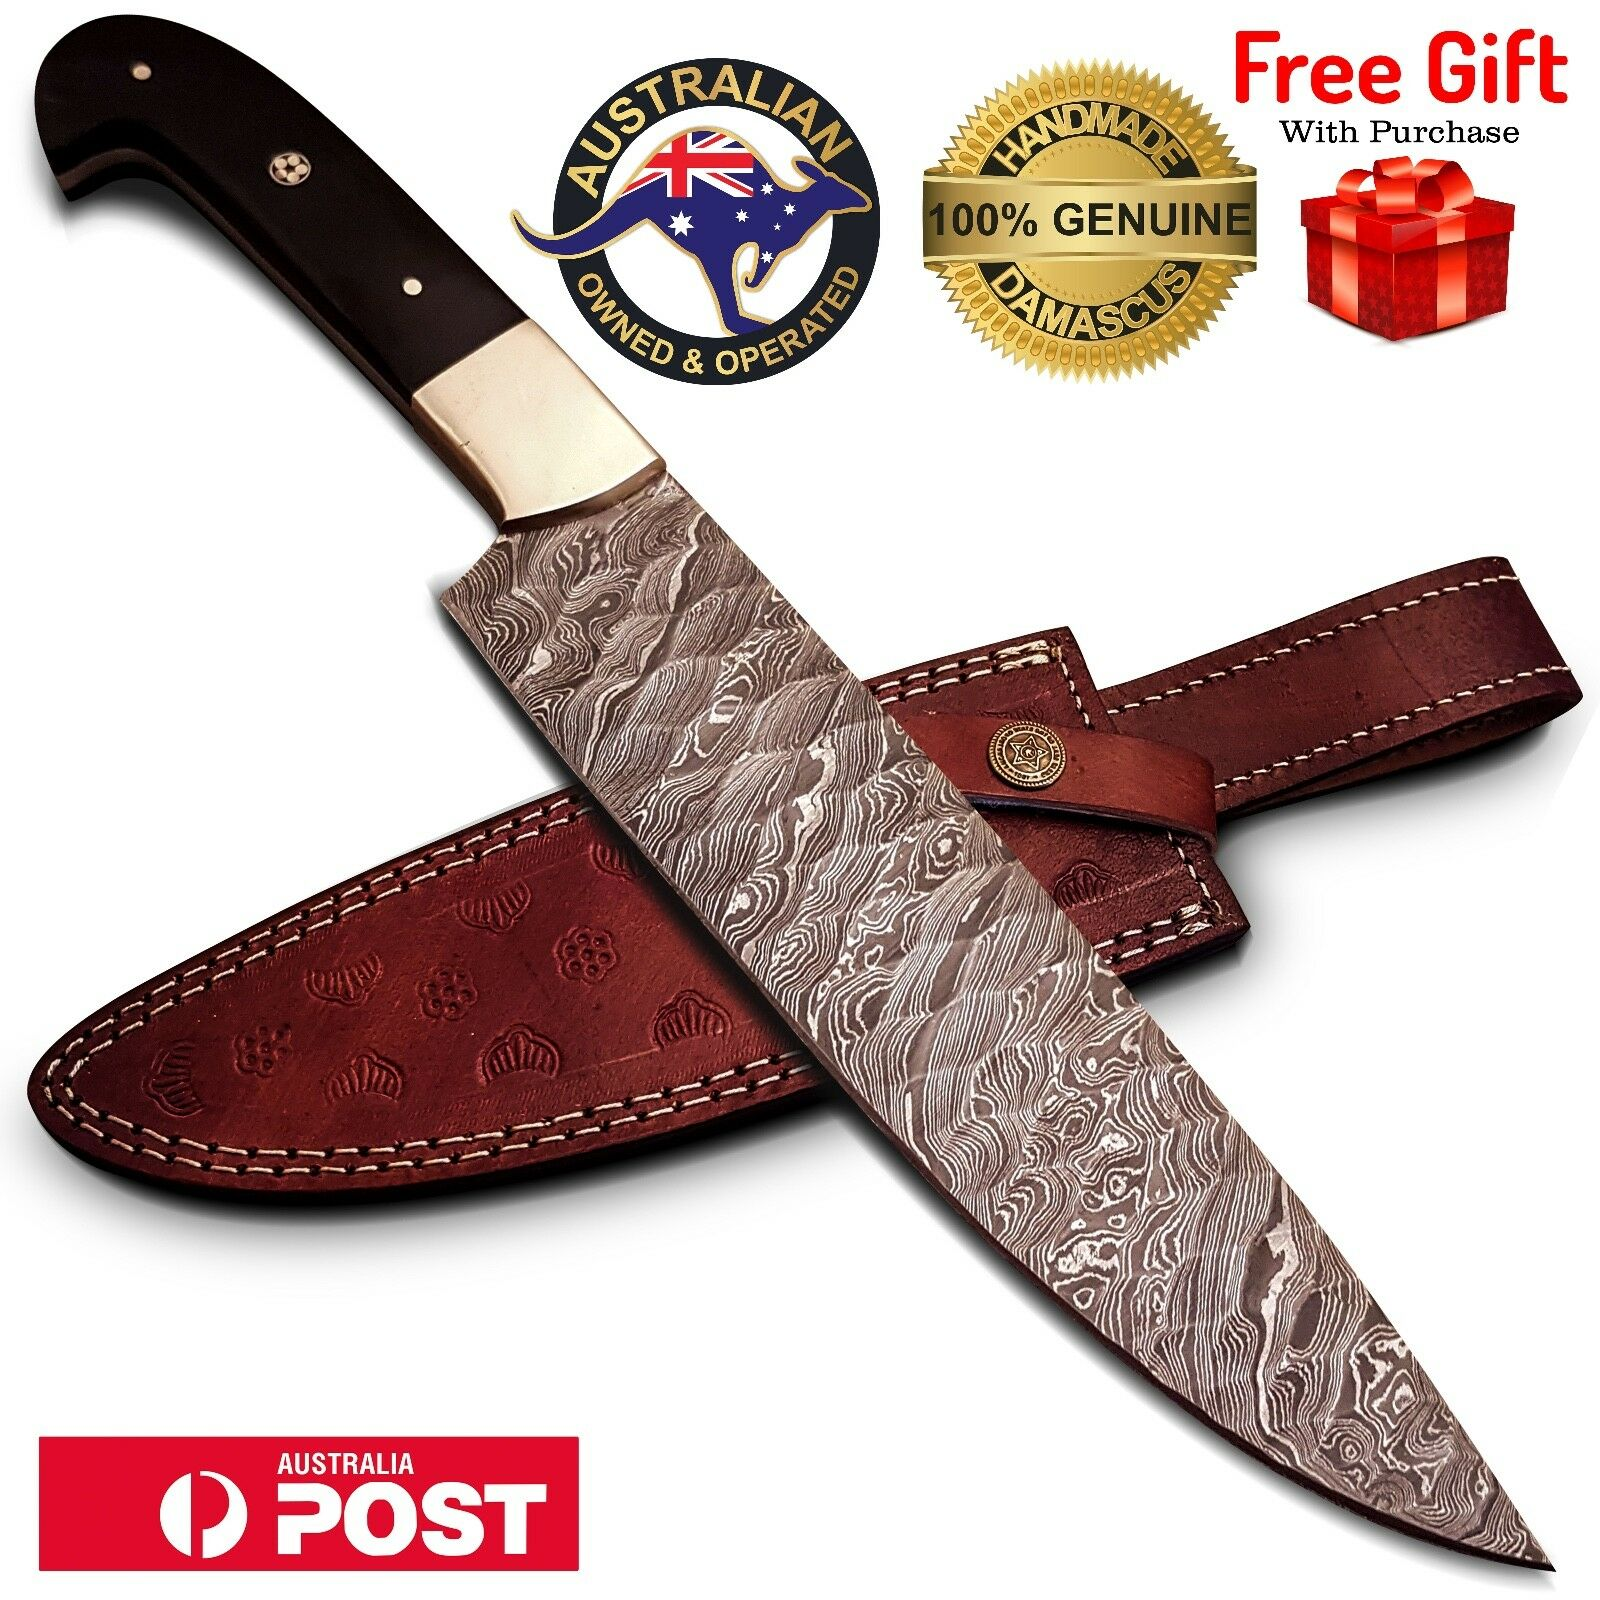 8  Handmade Damascus Steel Kitchen Chef Knife, Bull Horn Handle, Leafher Sheath